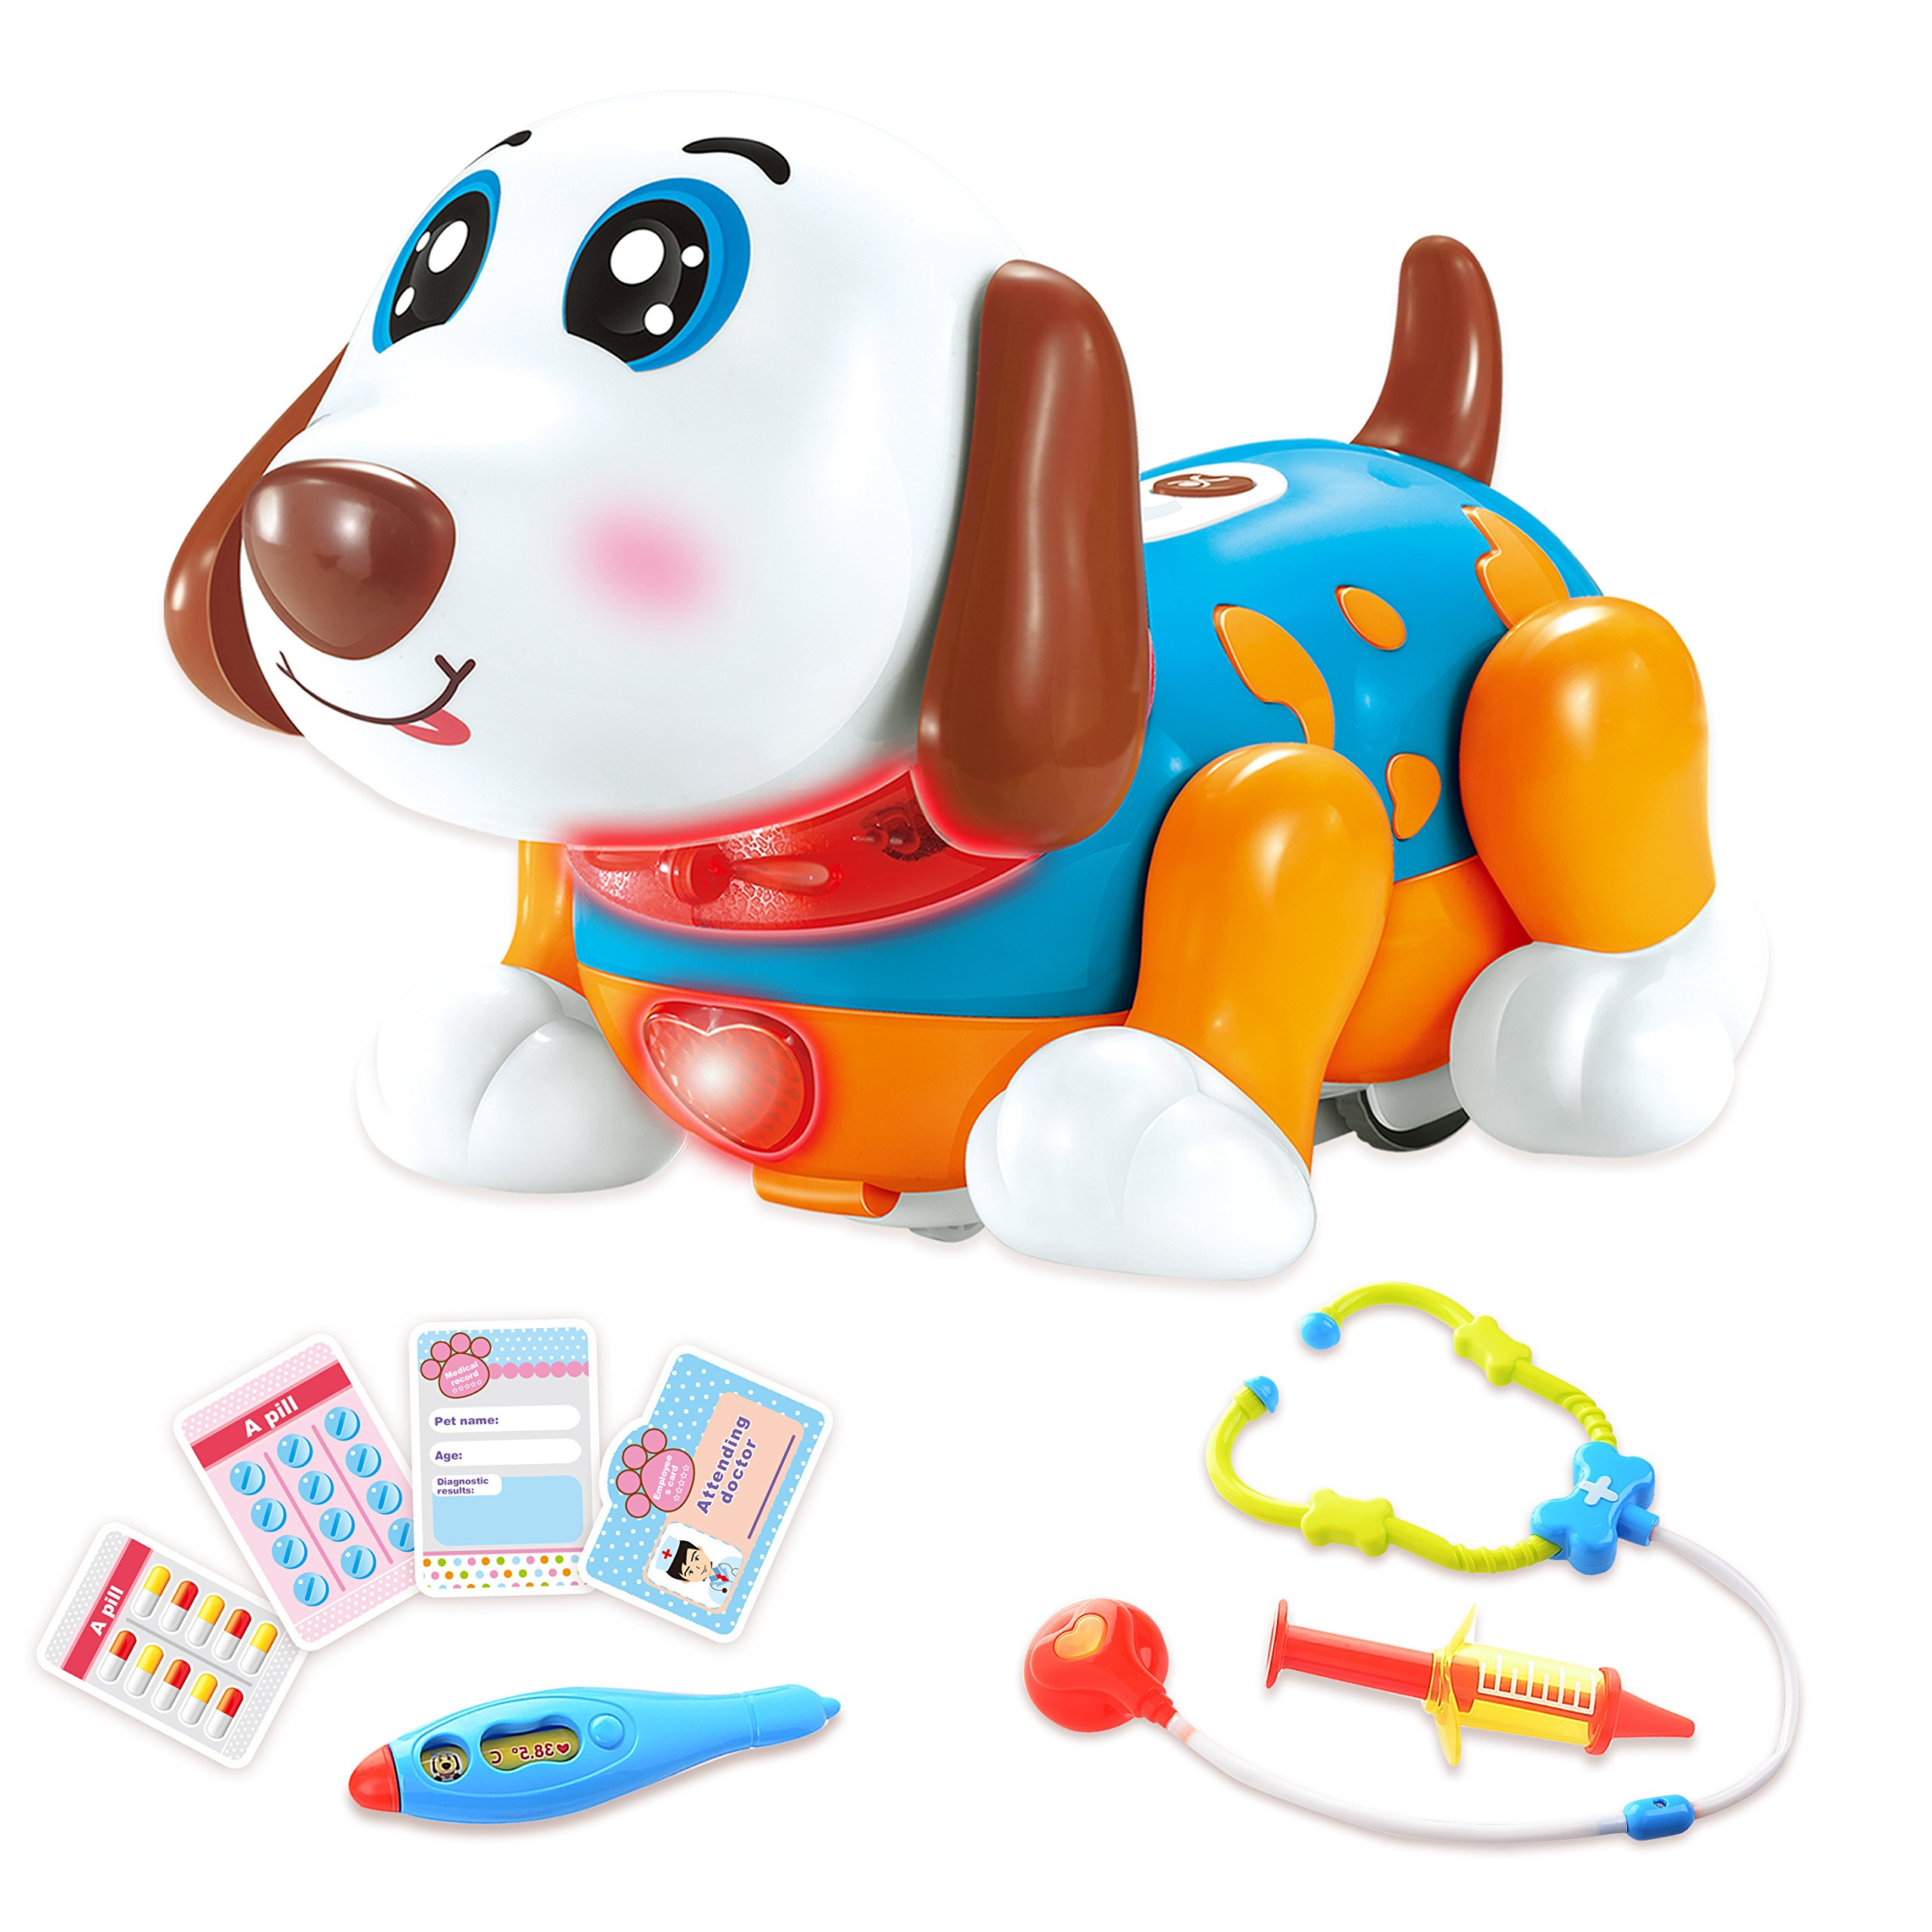 Pet Veterinarian Toys Doctor Kit for Kids for 2,3,4 Years Old Boys and Girls Birthday Gift Interactive Electronic Robot Dog Responds to Touch with Dance, Music & Barking (Blue)